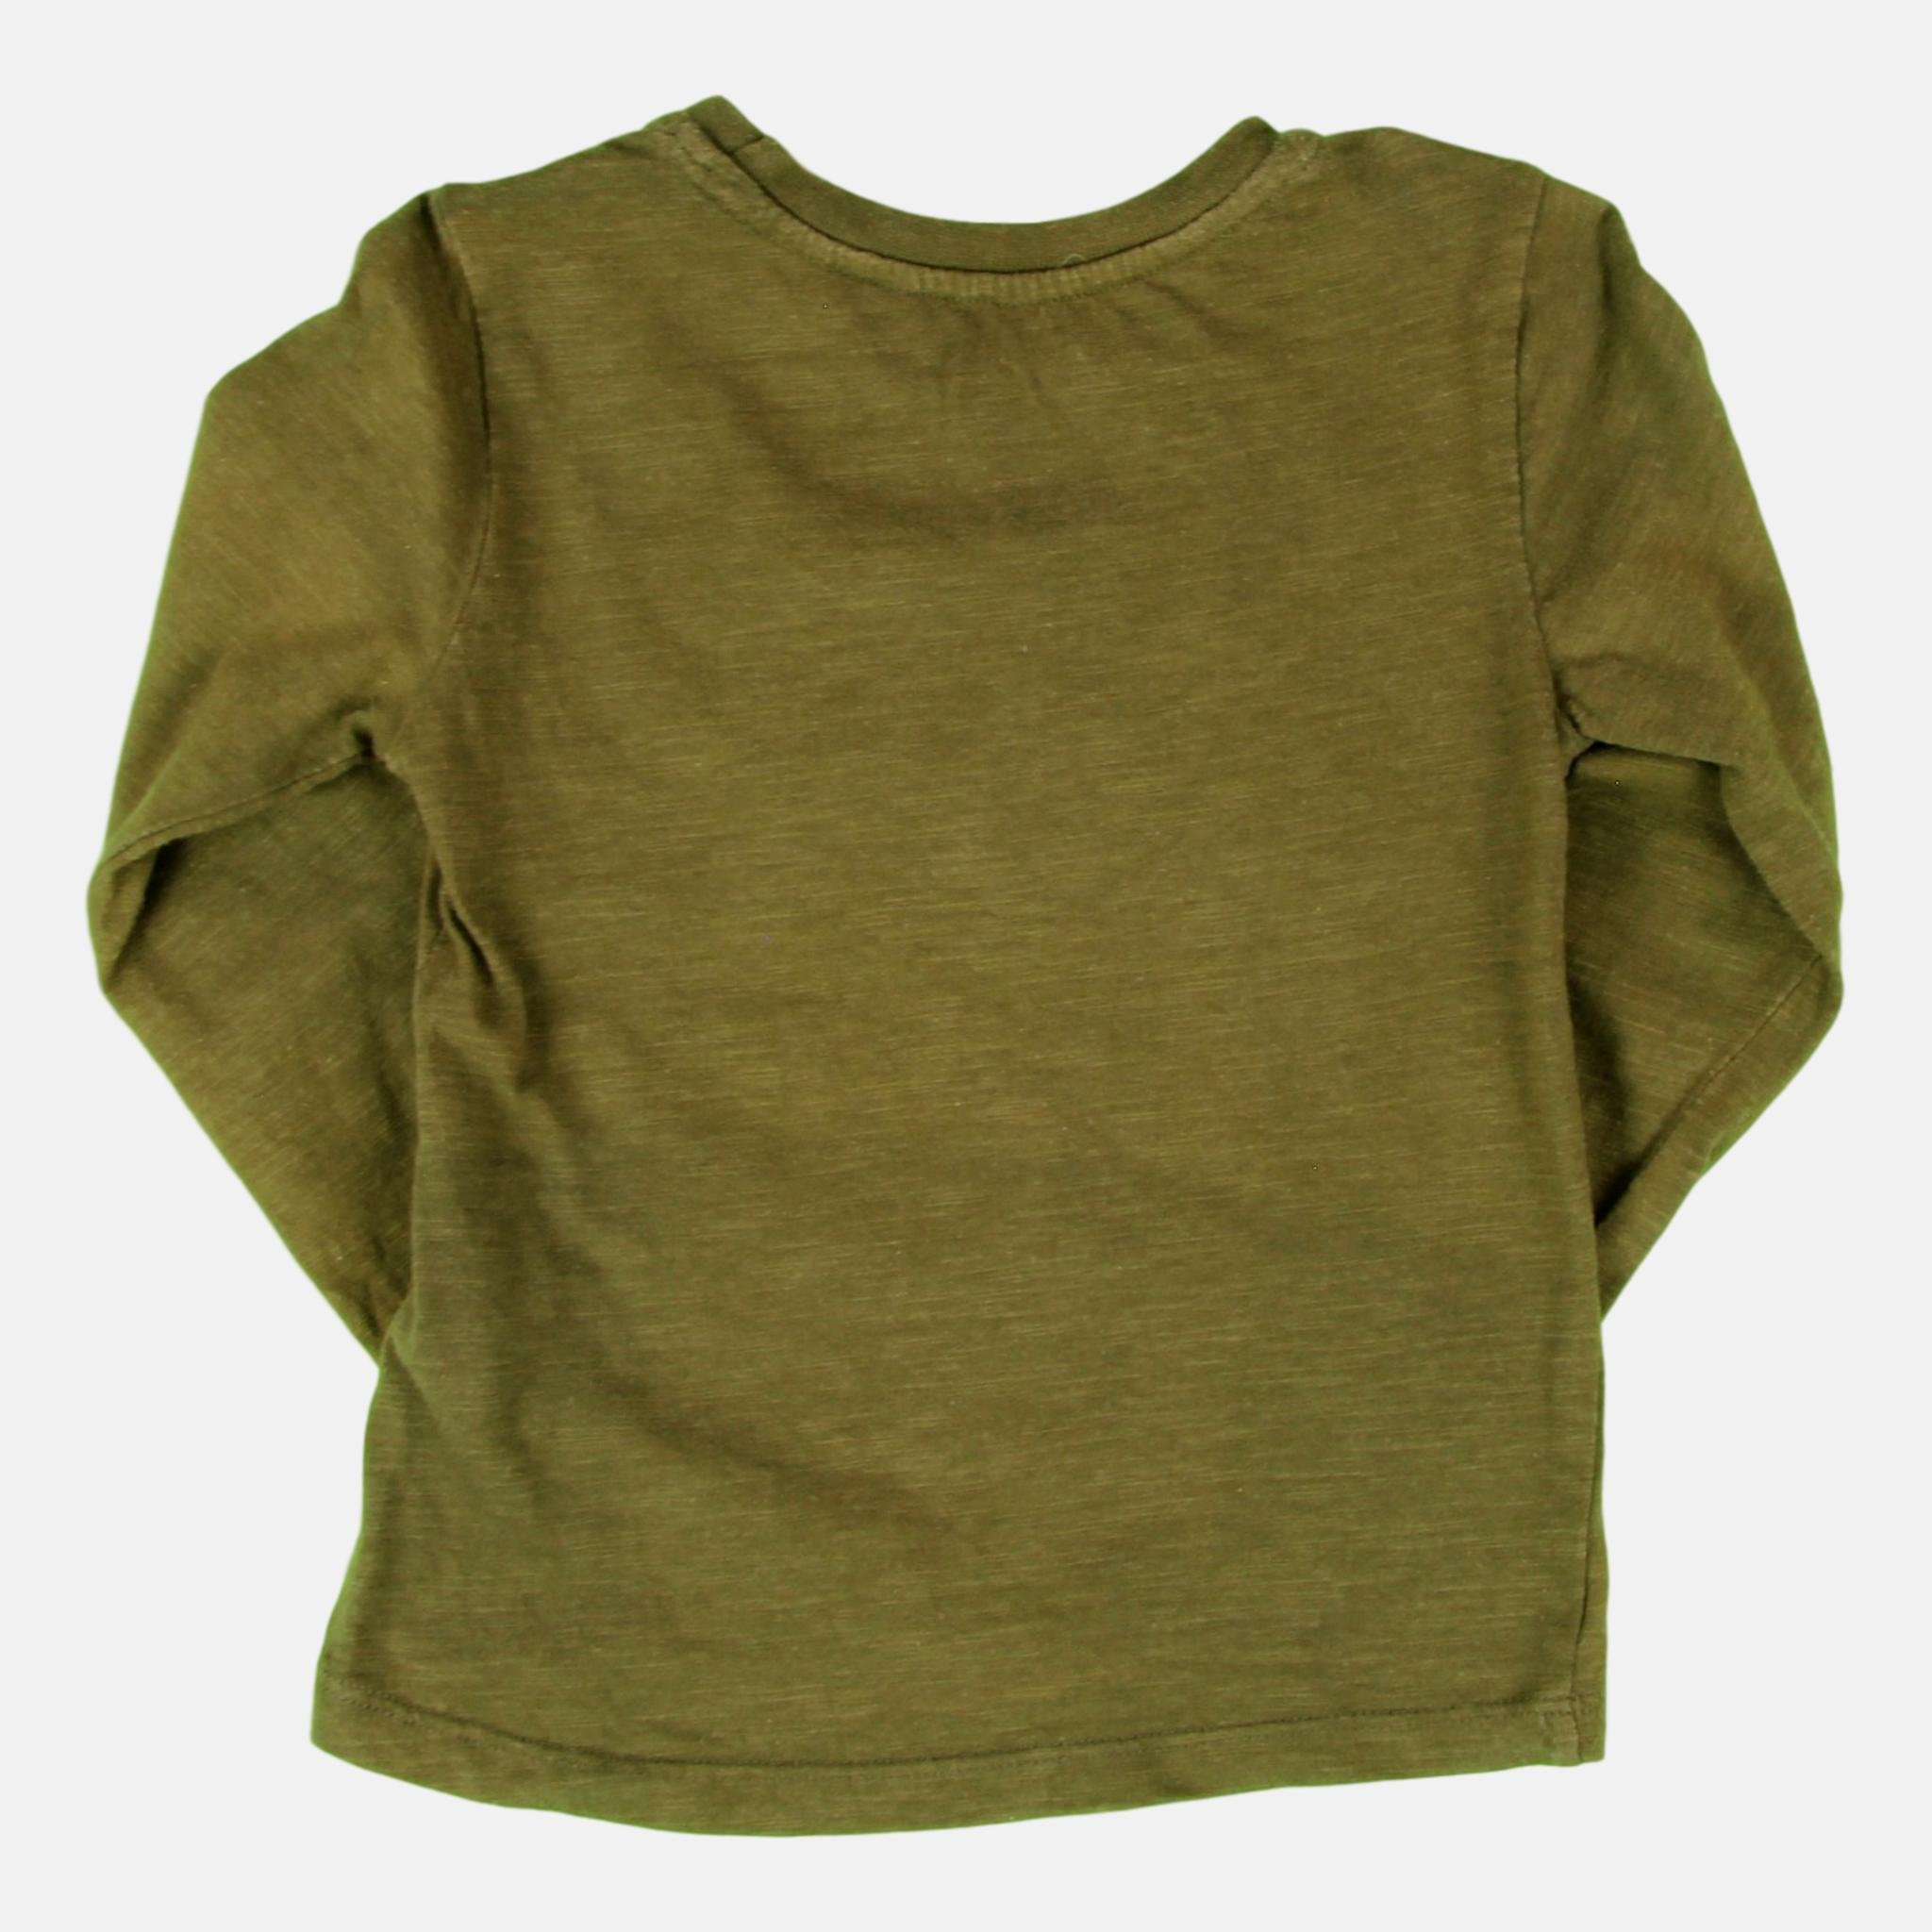 Long Sleeve T-Shirt, 18-24 Months